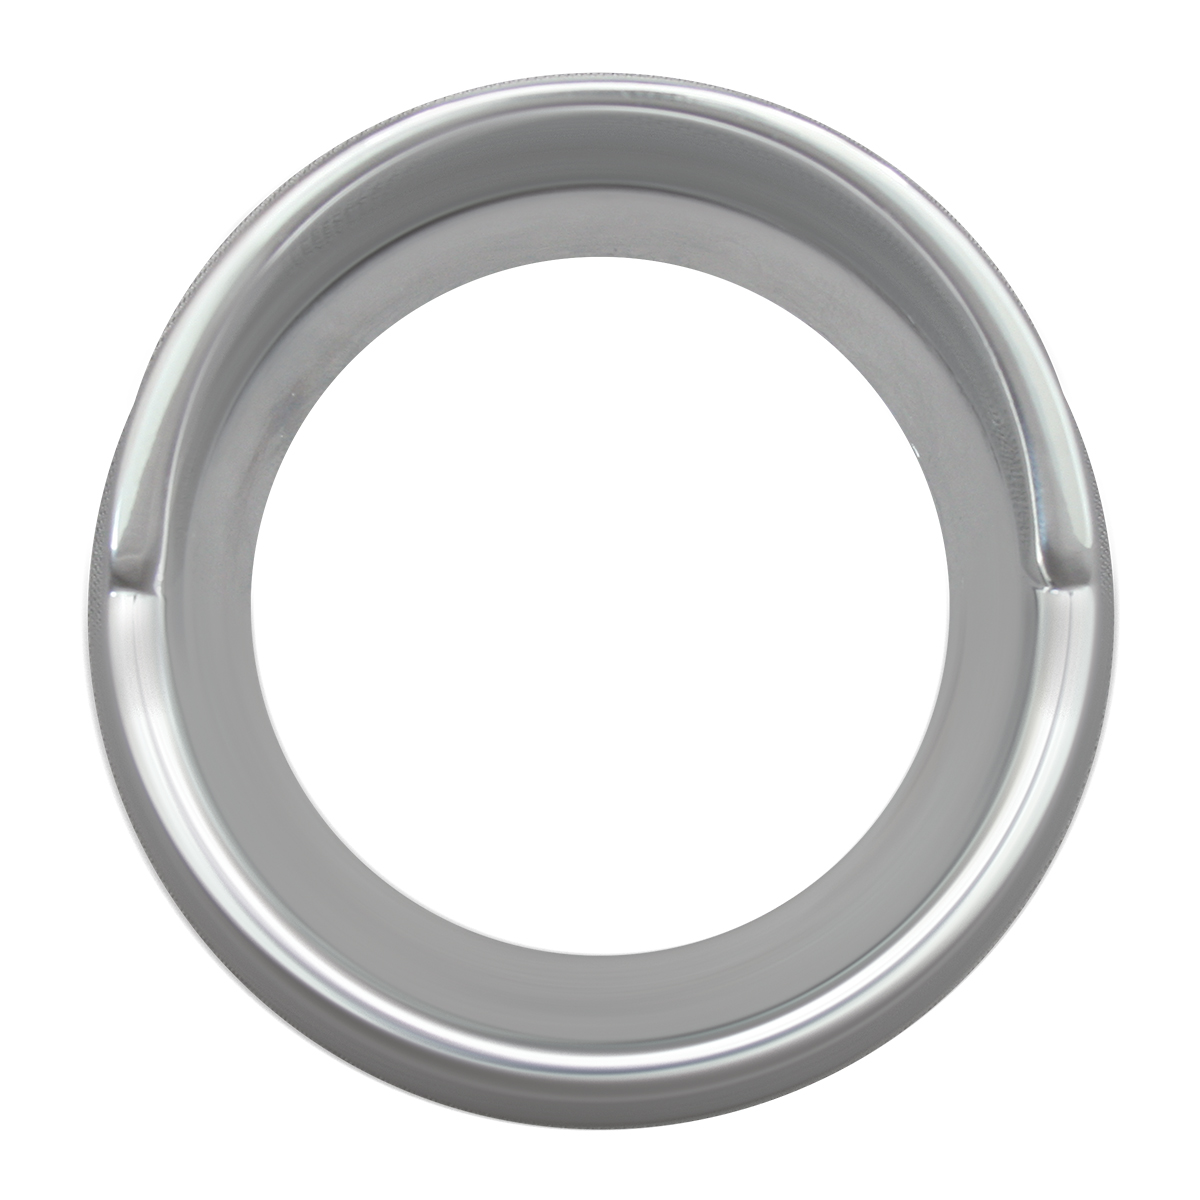 68390 Chrome Plastic Small Snap-On Gauge Cover w/ Visor for KW